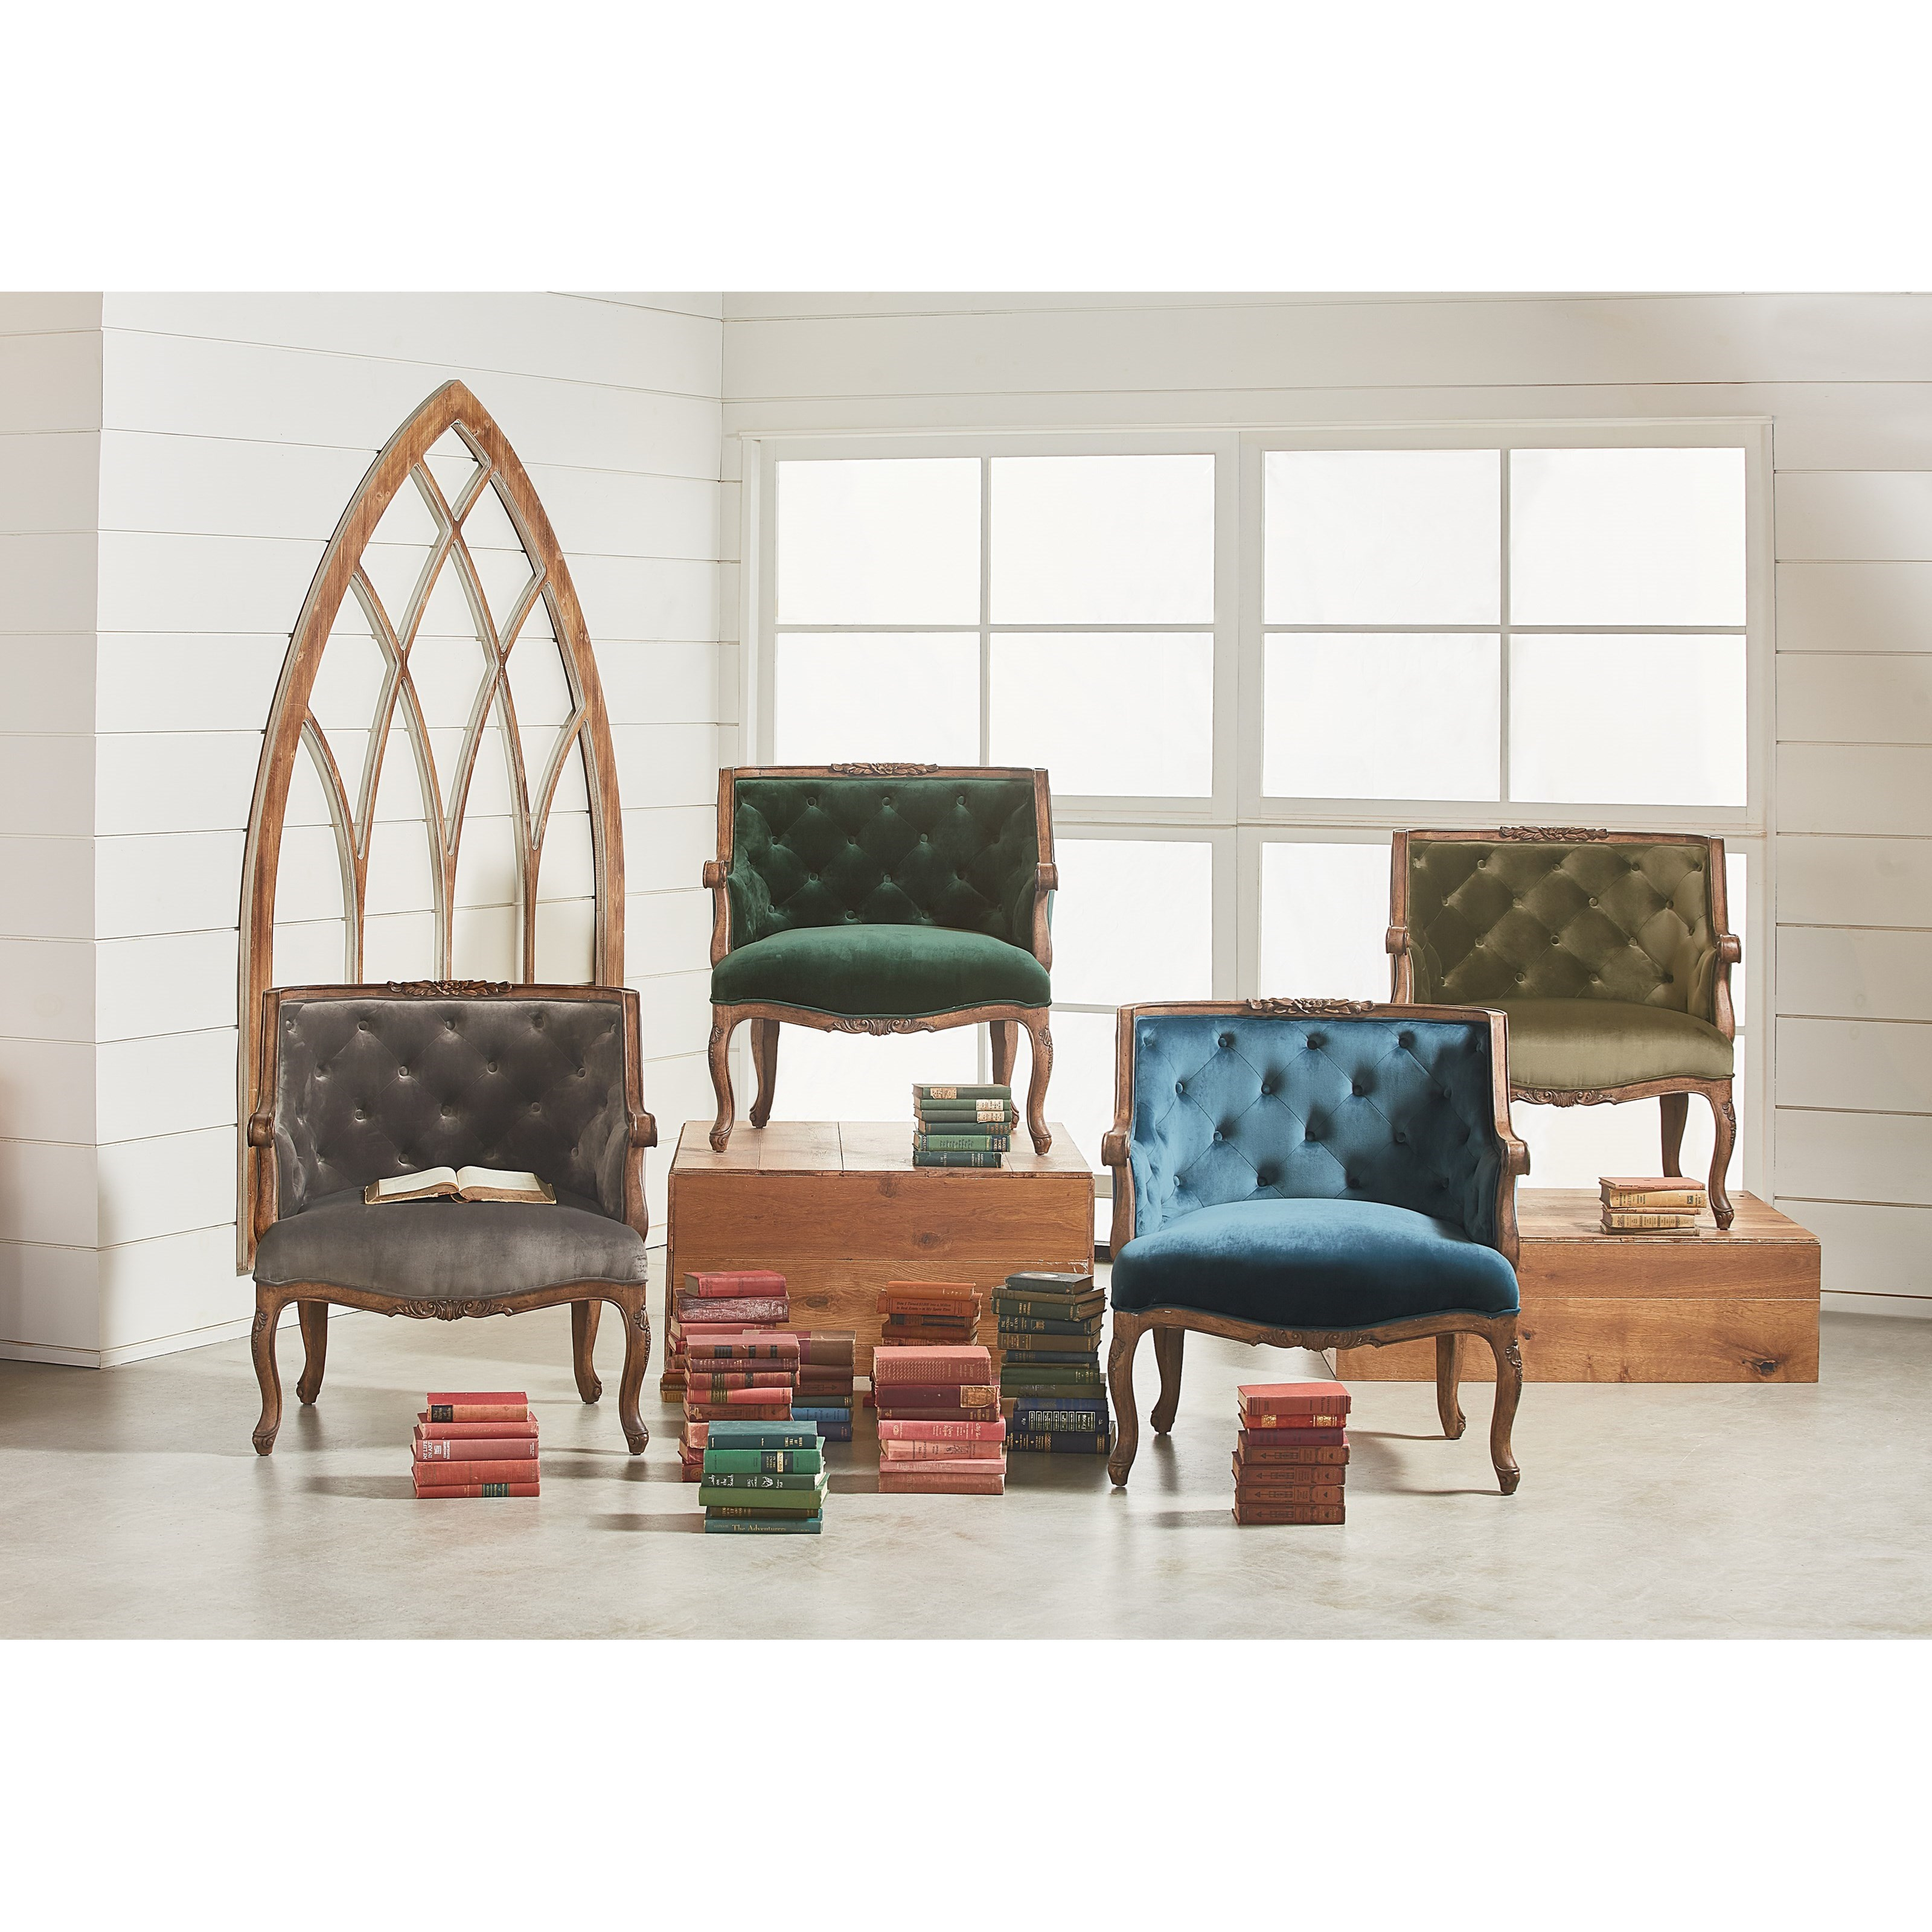 Magnolia Home By Joanna Gaines Accent Chair Bloom